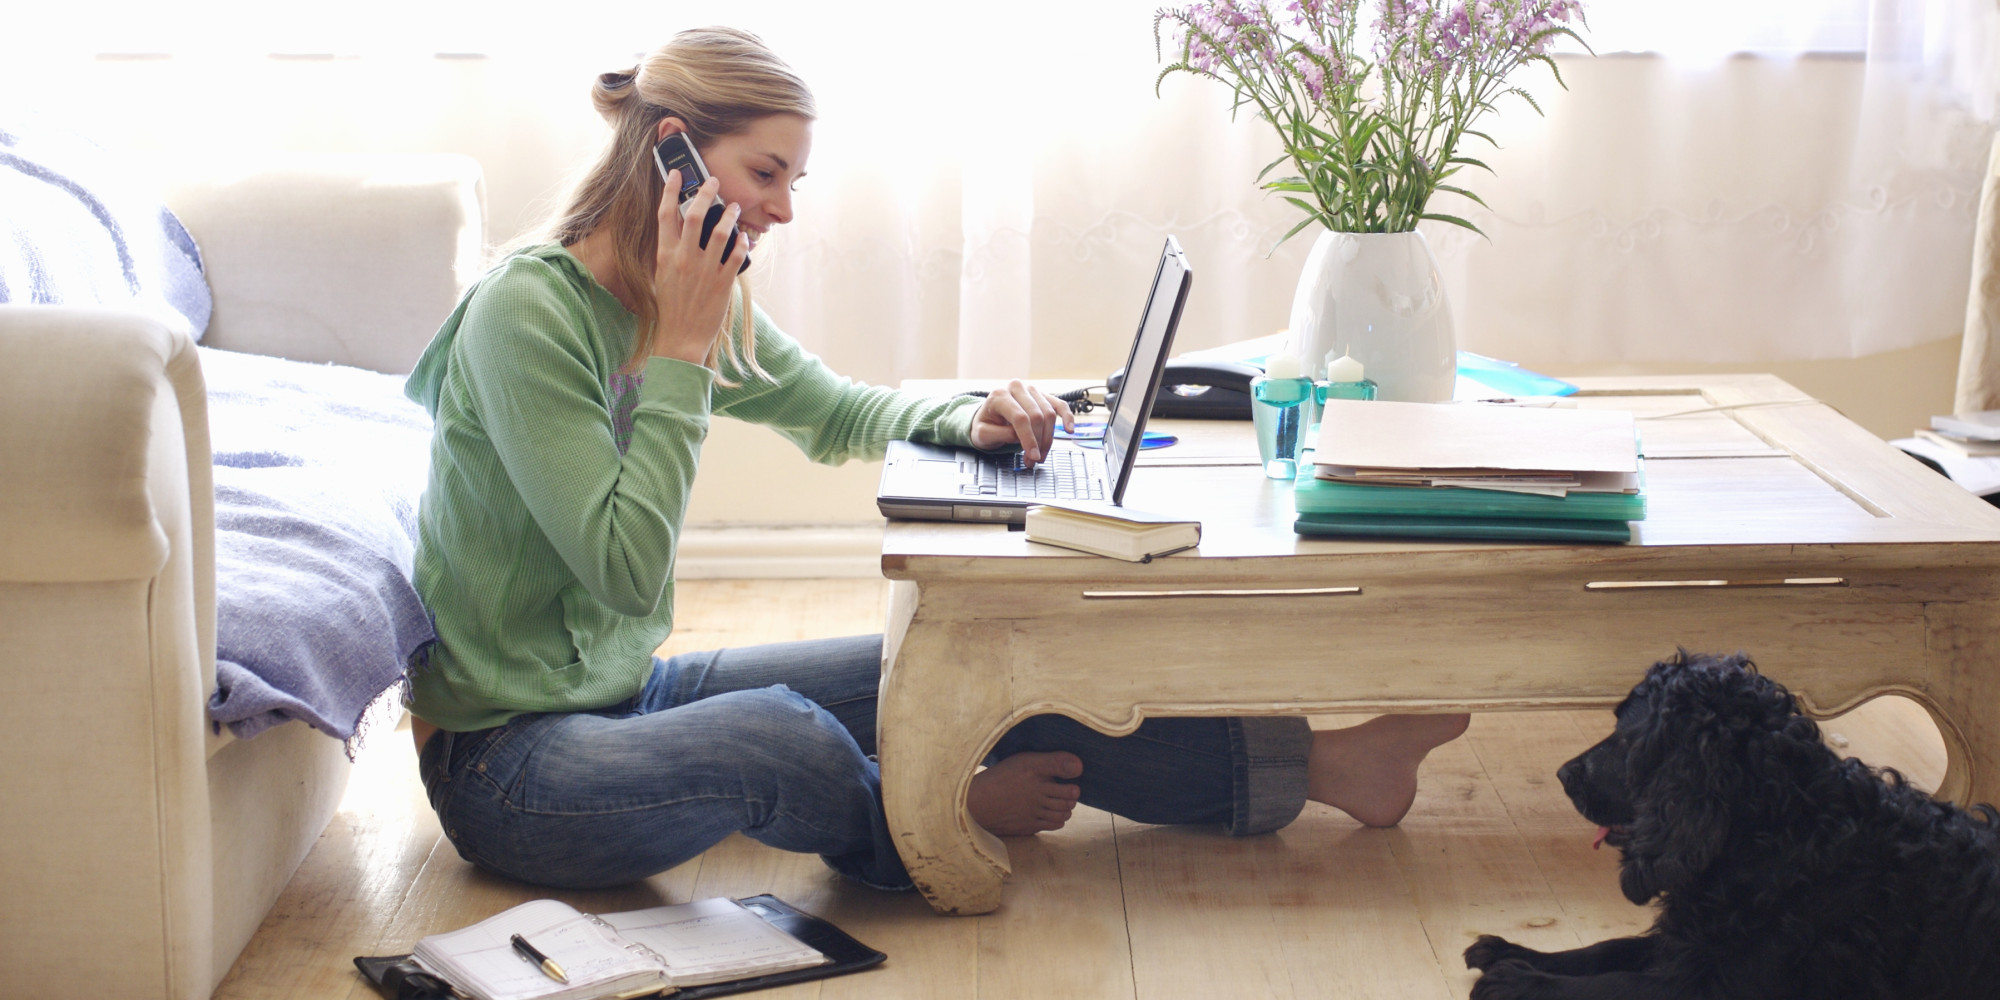 How to focus on work at home